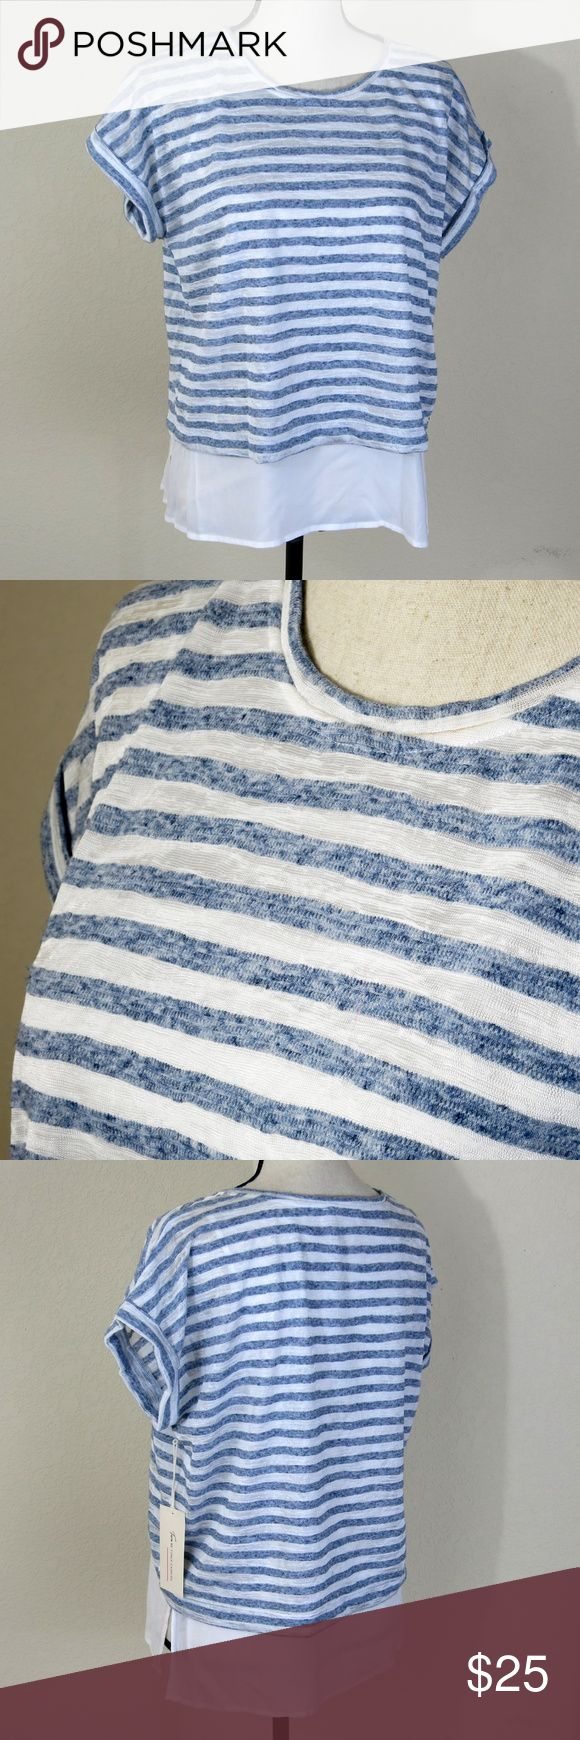 Two by Vince Camuto Blue Stripe Shirt Size S NWT Blue and white striped shirt with short sleeves with cuffs and a scoop neck, attached white tank under the shirt, from the top of the shoulder to the bottom of the shirt is about 20 inches, from the top of the shoulder to the bottom of the tank is about 24 inches, sleeve length is about 5 inches, chest measurement is about 44 inches, chest measurement for the tank is about 36 inches, NWT This shirt has the manufacture's tag but not the store…